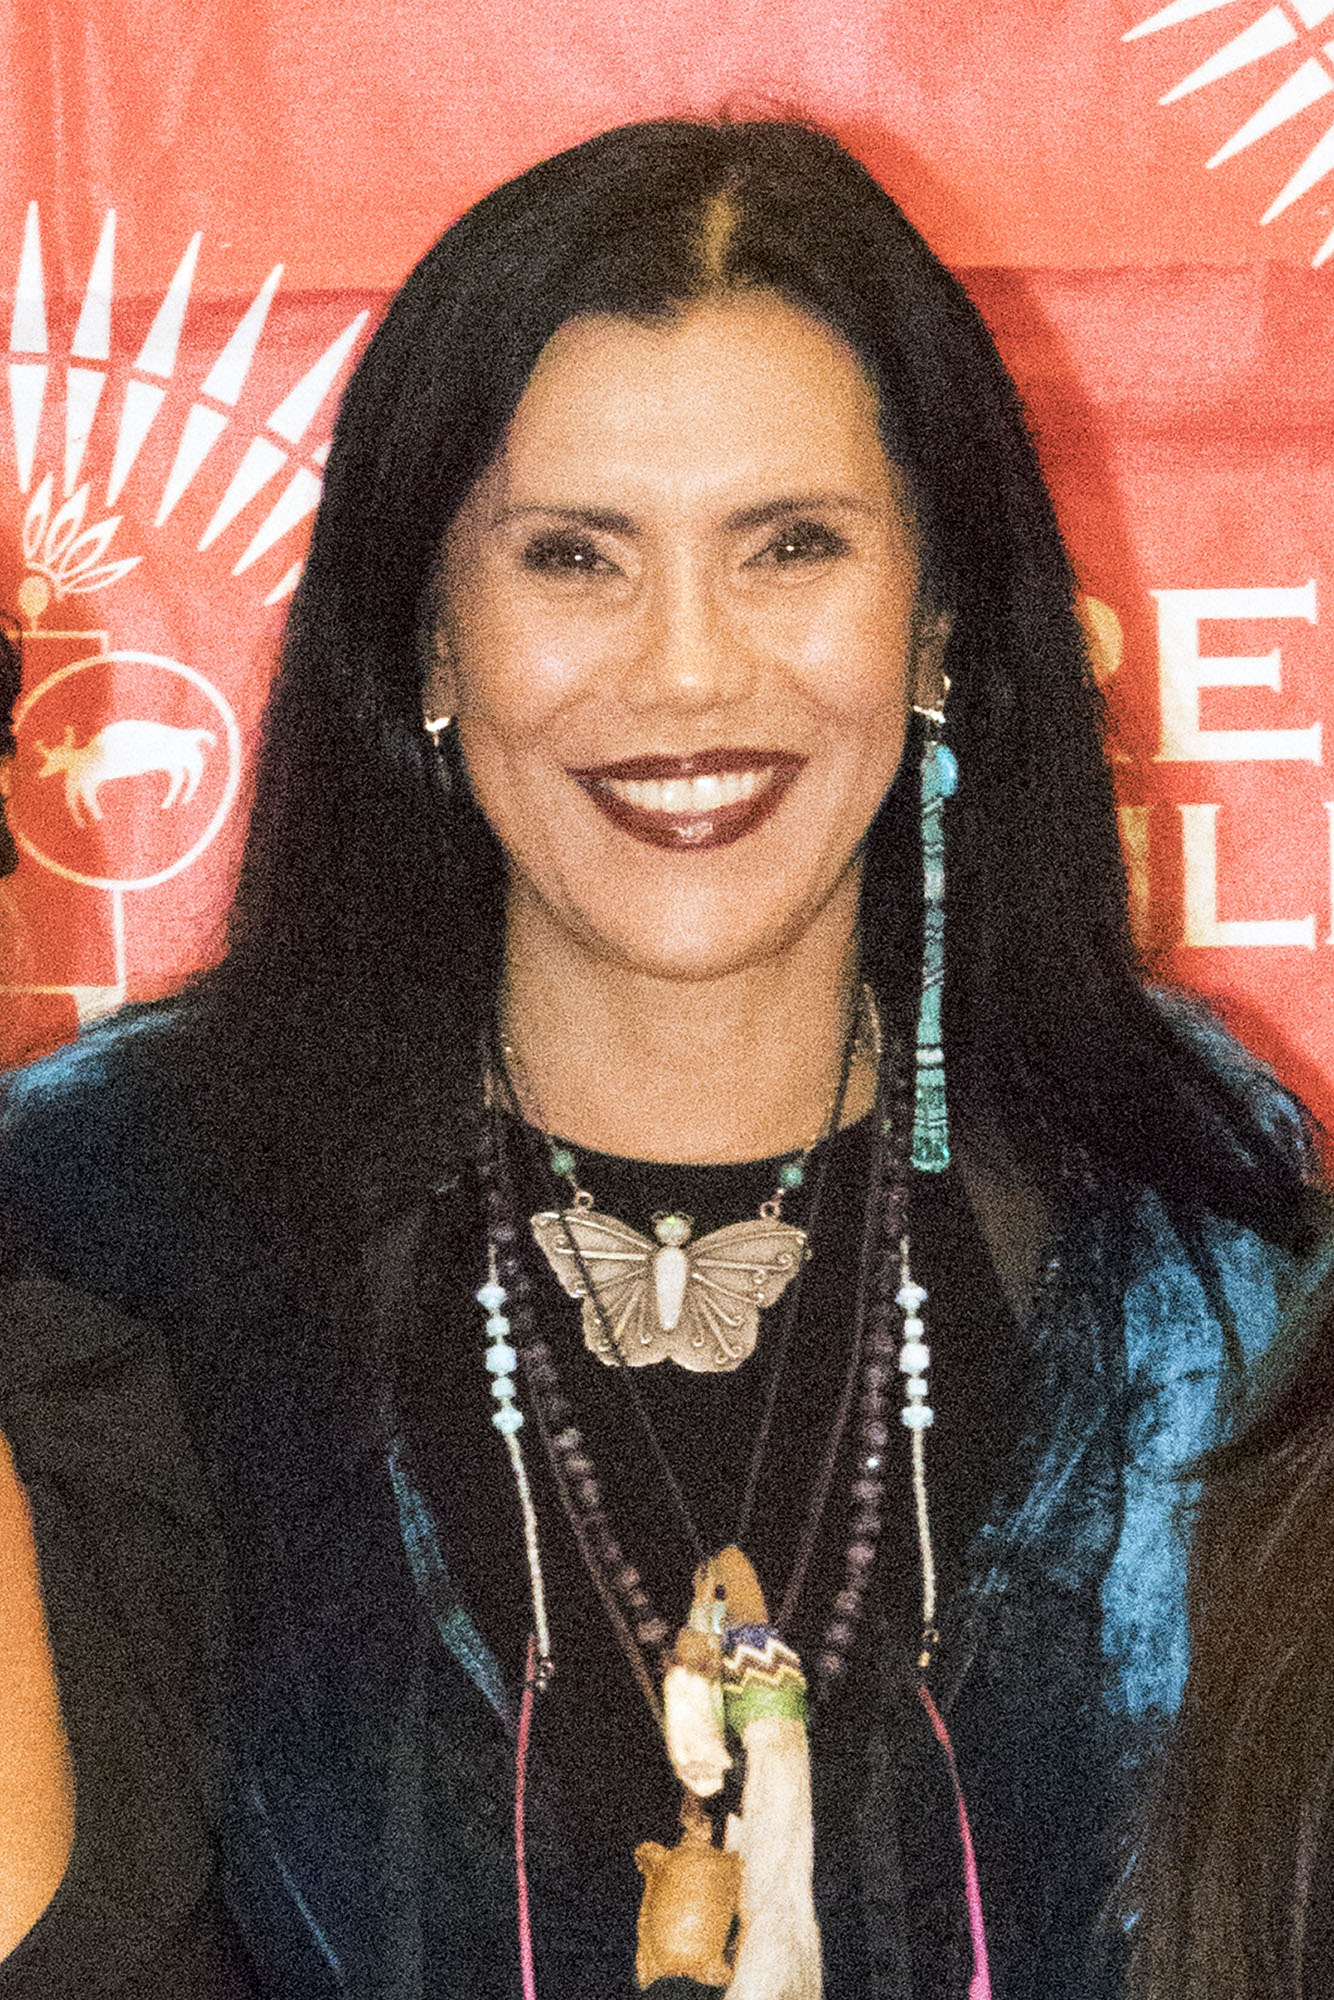 """Red Nation Film Festival -NATIVES IN CHARGE OF THEIR NARRATIVE on Friday, November 10, 2017 at Linwood Dunn Theatre, Hollywood, CA. World Premiere of """"Women in the Sand""""."""